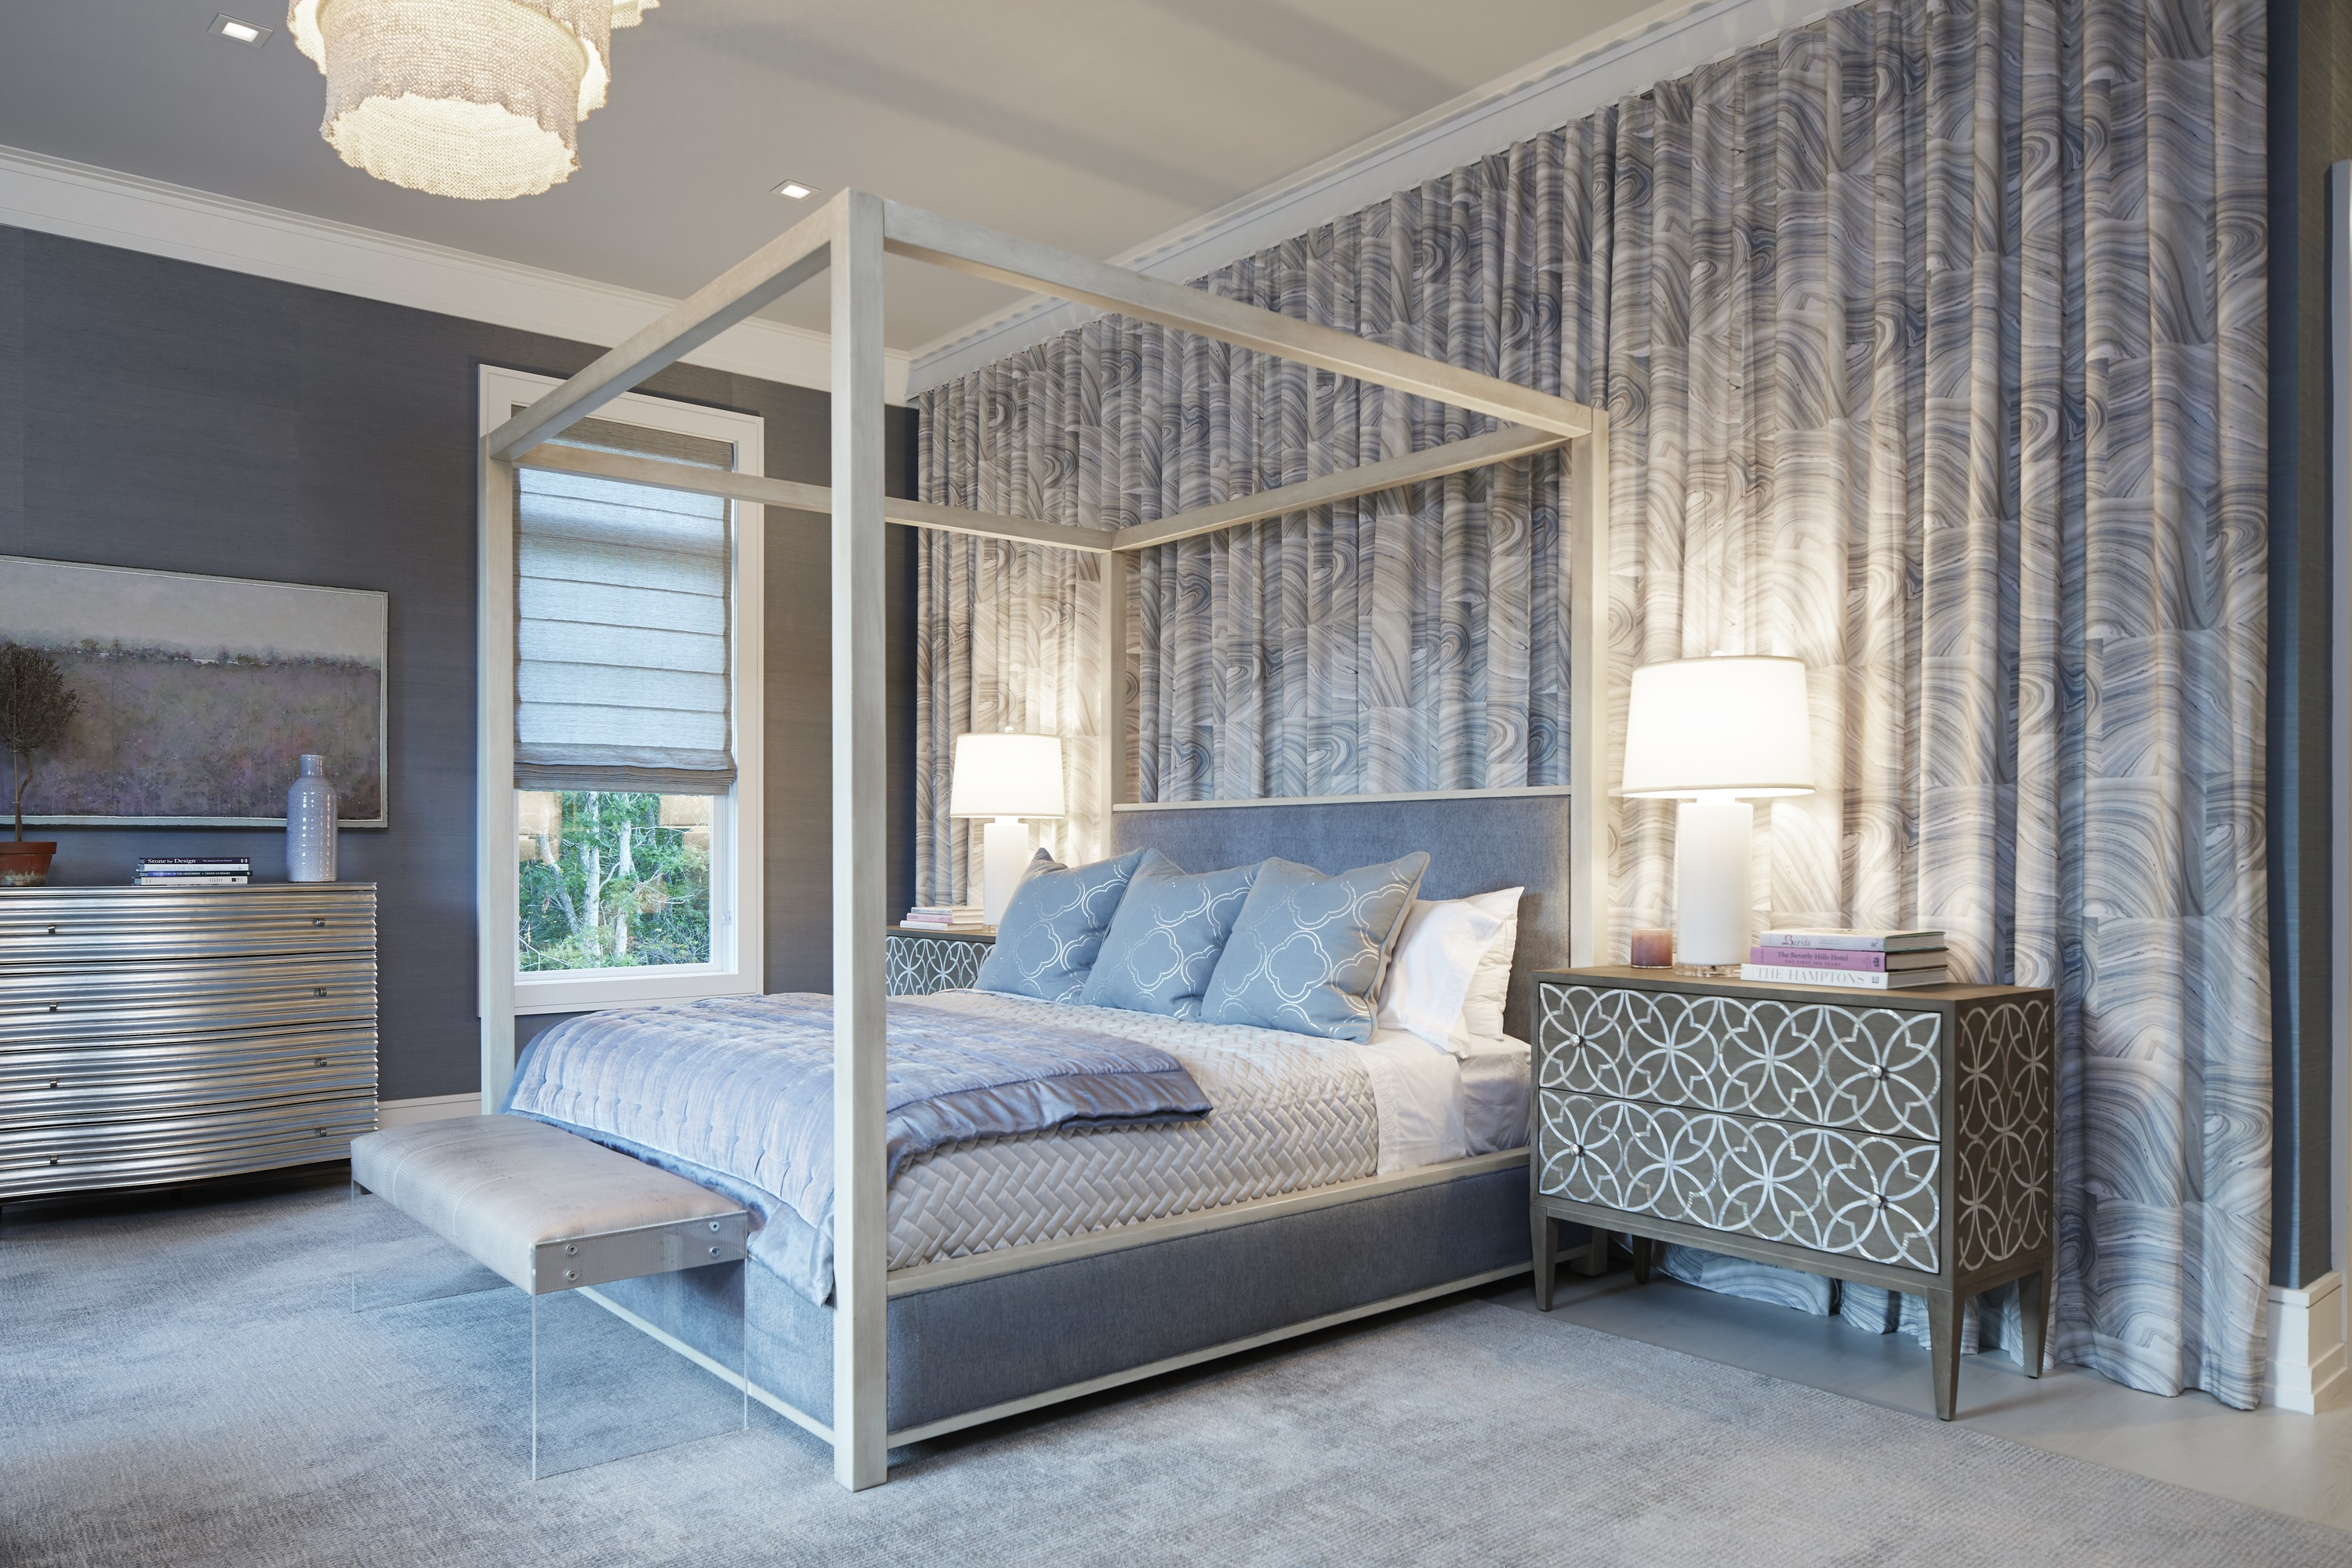 In the first-floor master bedroom, layers of color, pattern and texture build to create an environment of serenity punctuated by moments of metallic glamour.